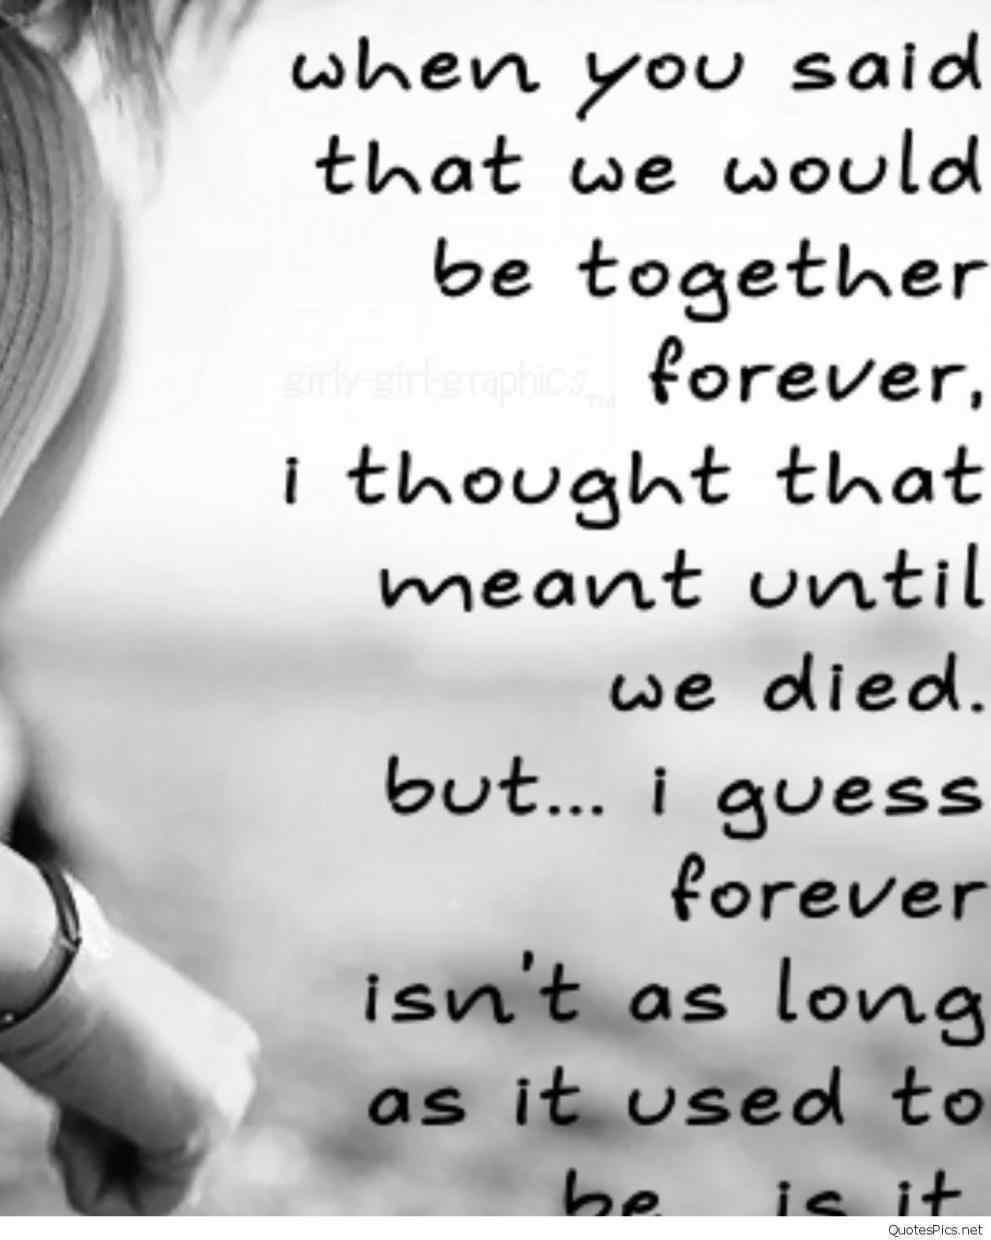 Short Sad Love Quotes That Make You Cry For Her Sad Love Stories That Will Make You Cry Cute Heart Quotes